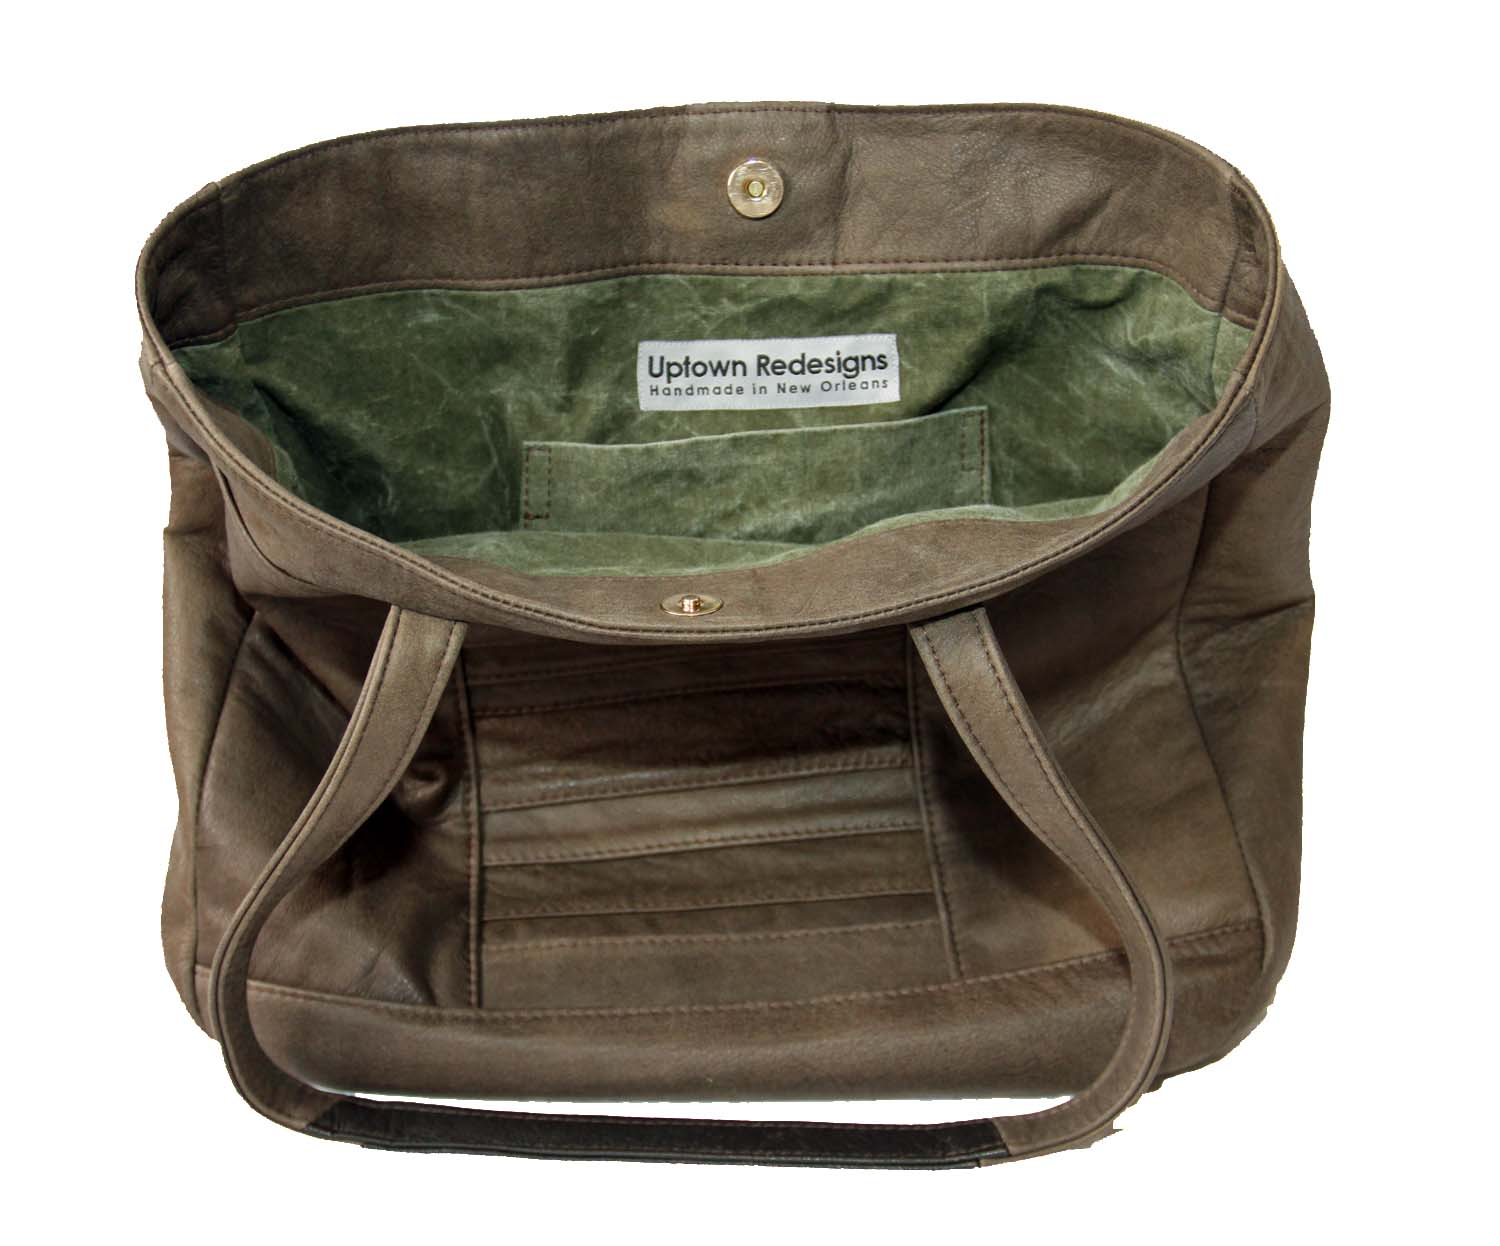 Interior of an upcycled leather bag.  The lining is made of US Army Tent canvas.